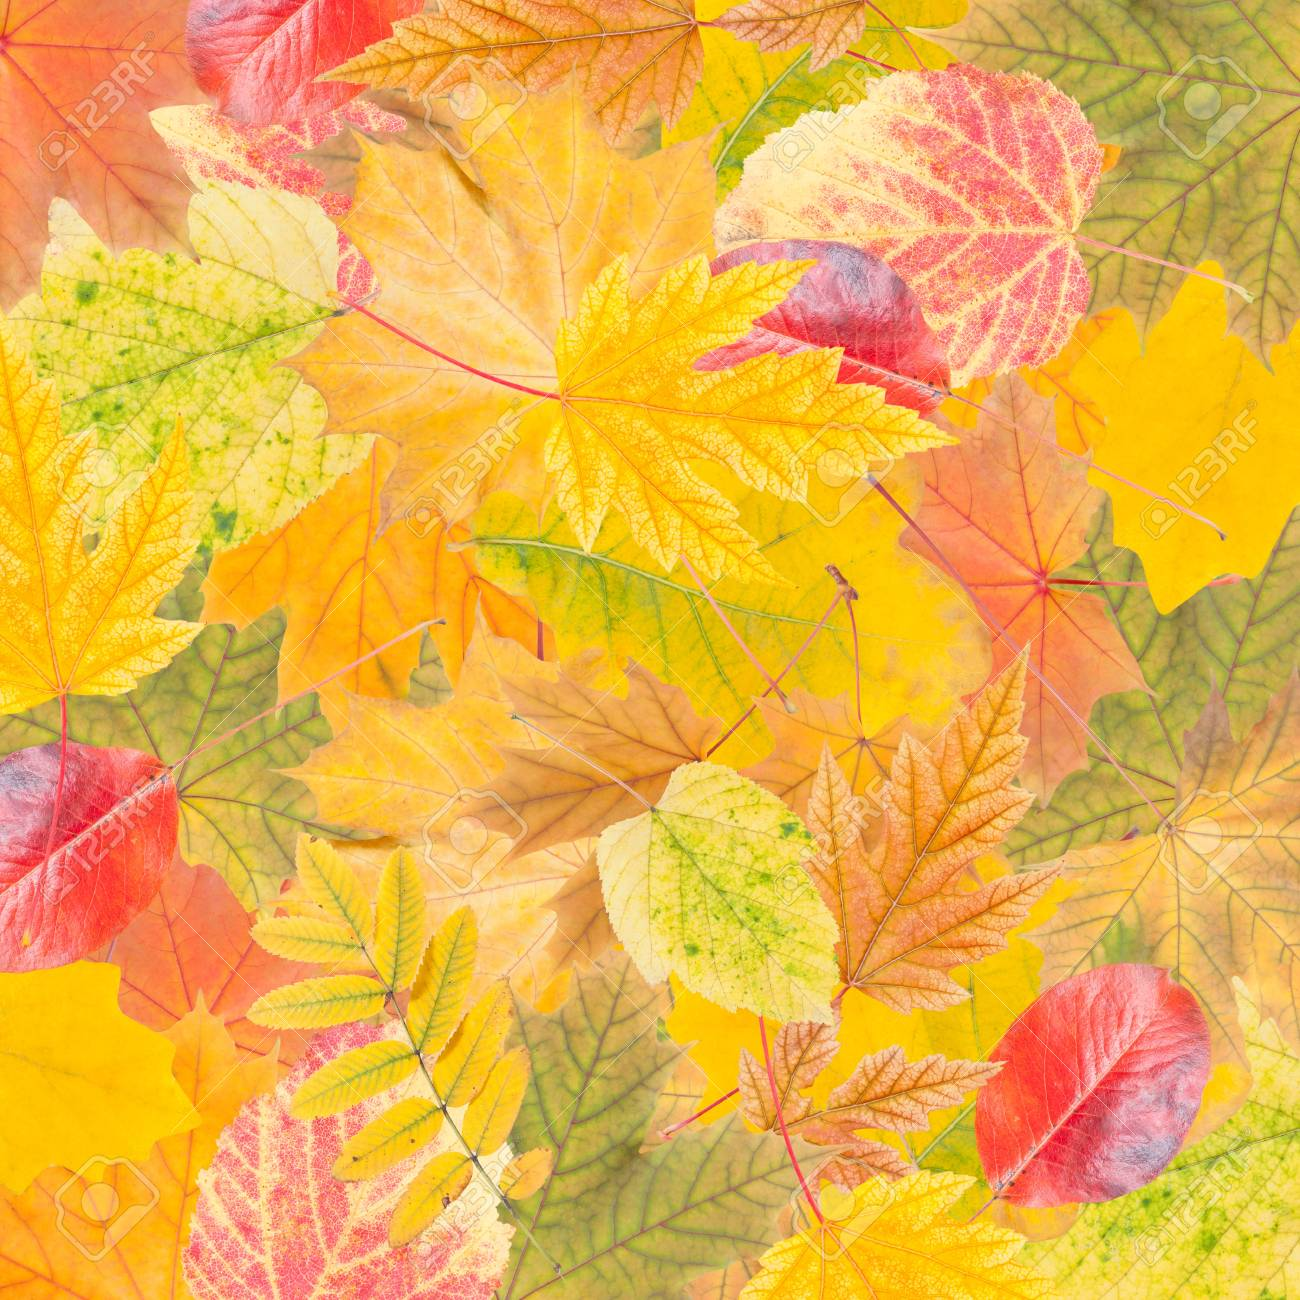 Autumn wallpaper with bright leaves for design, foliage background Stock Photo - 21994577